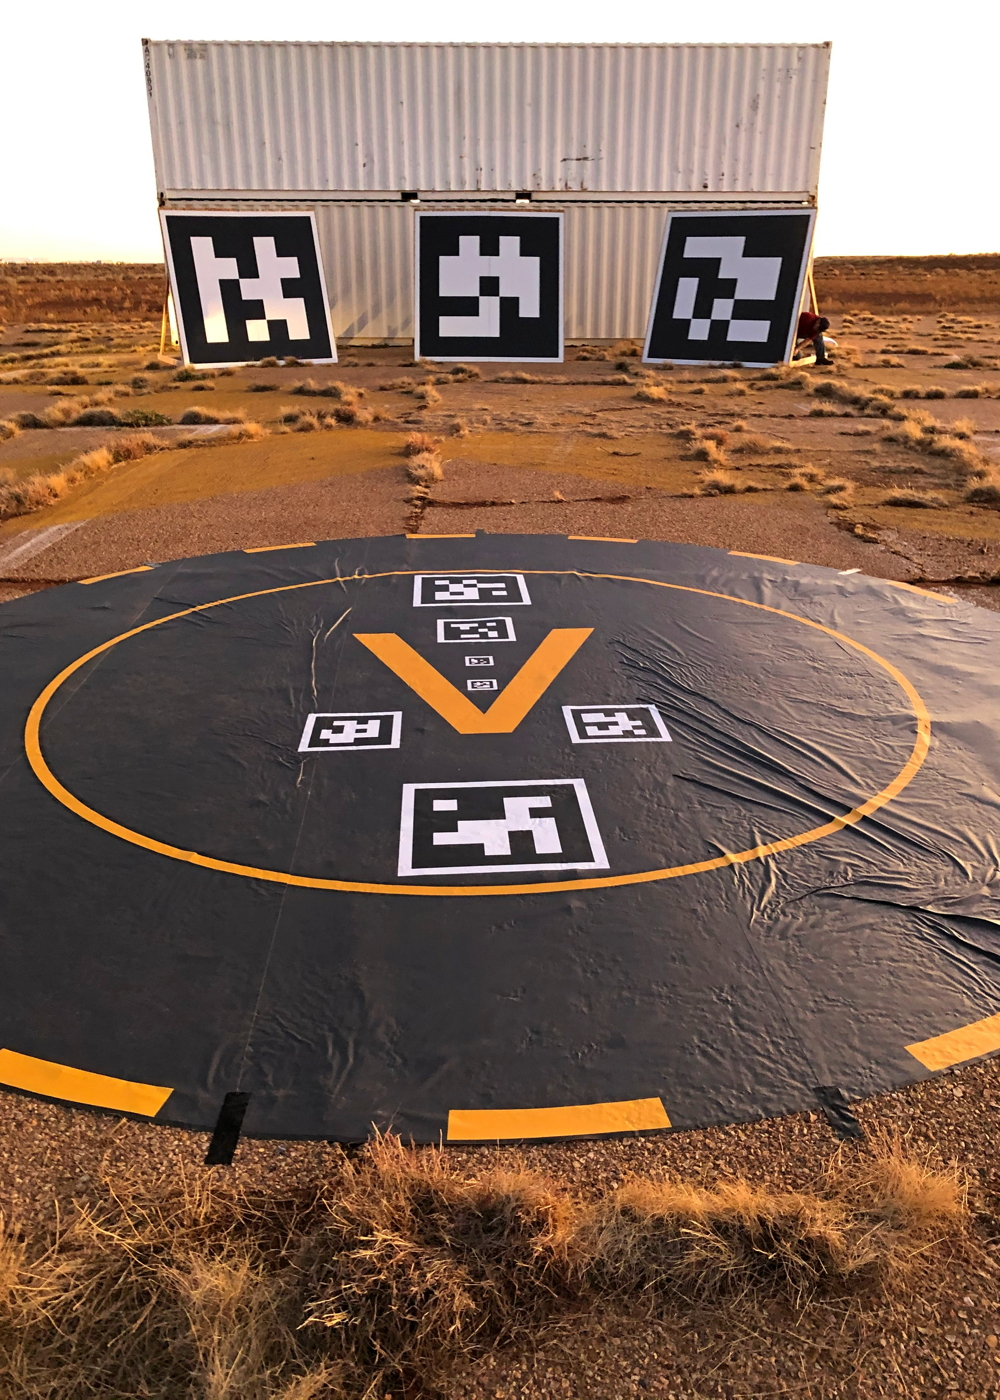 Honeywell automated landing system visual markings